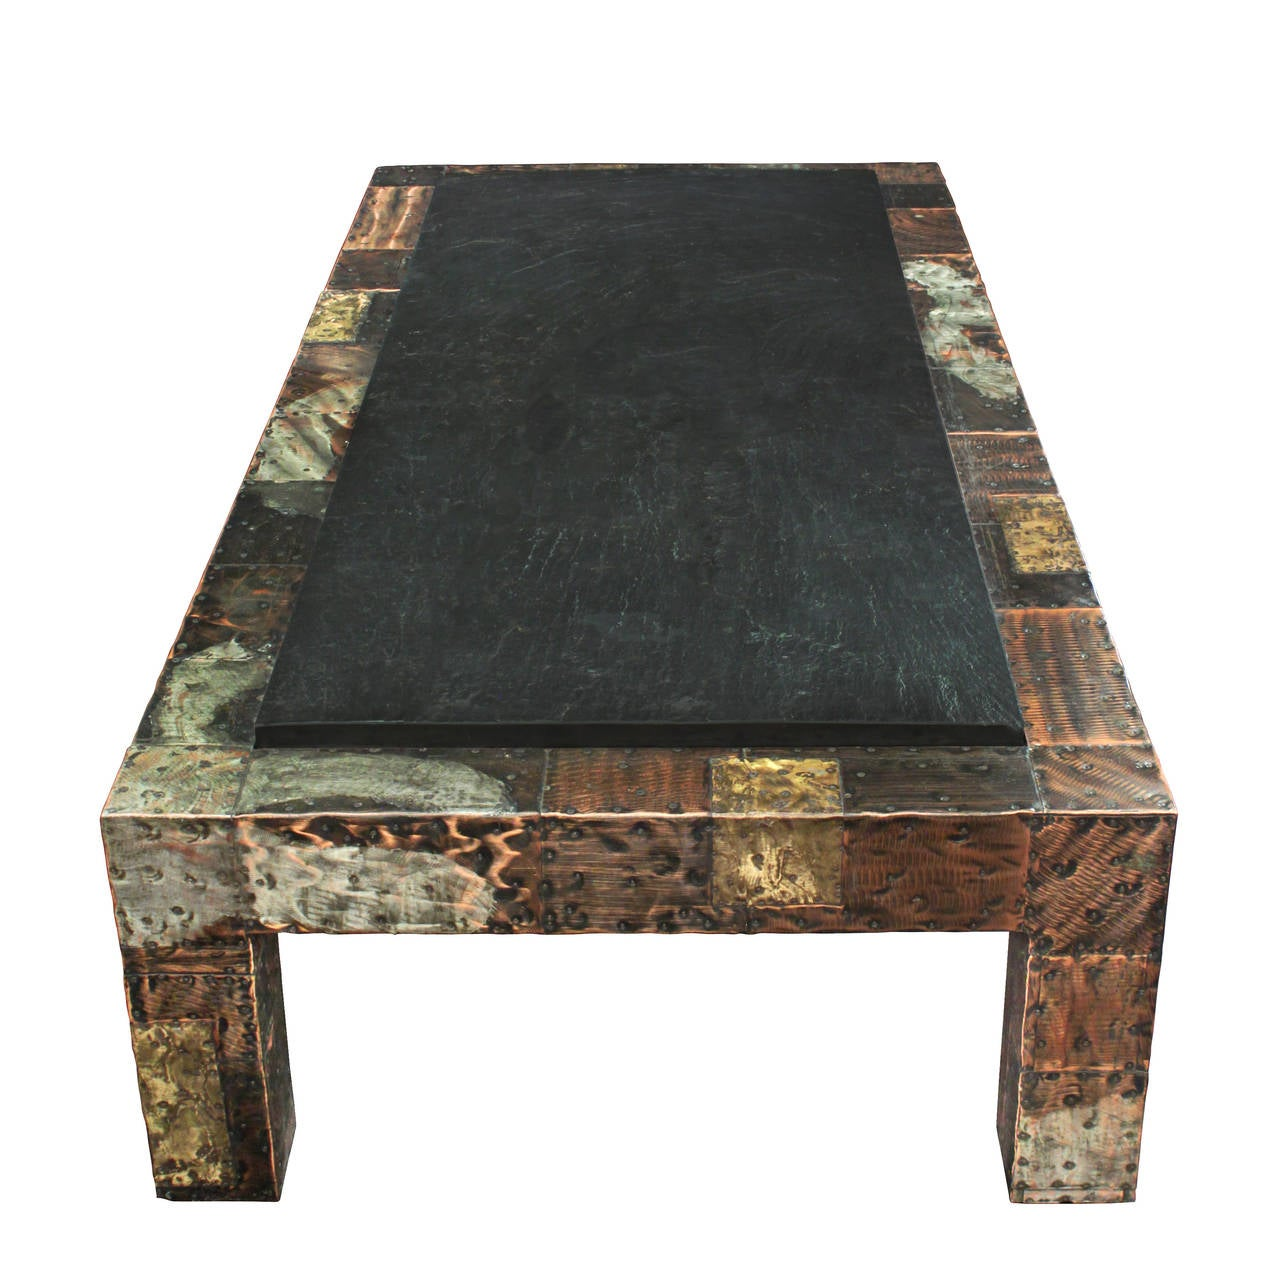 100 Slate Top Coffee Table Rustic Tile Coffee Table  : Evans180Patchworkslatetopcoffeetable369detail2hiresl from 45.32.79.15 size 1280 x 1270 jpeg 143kB